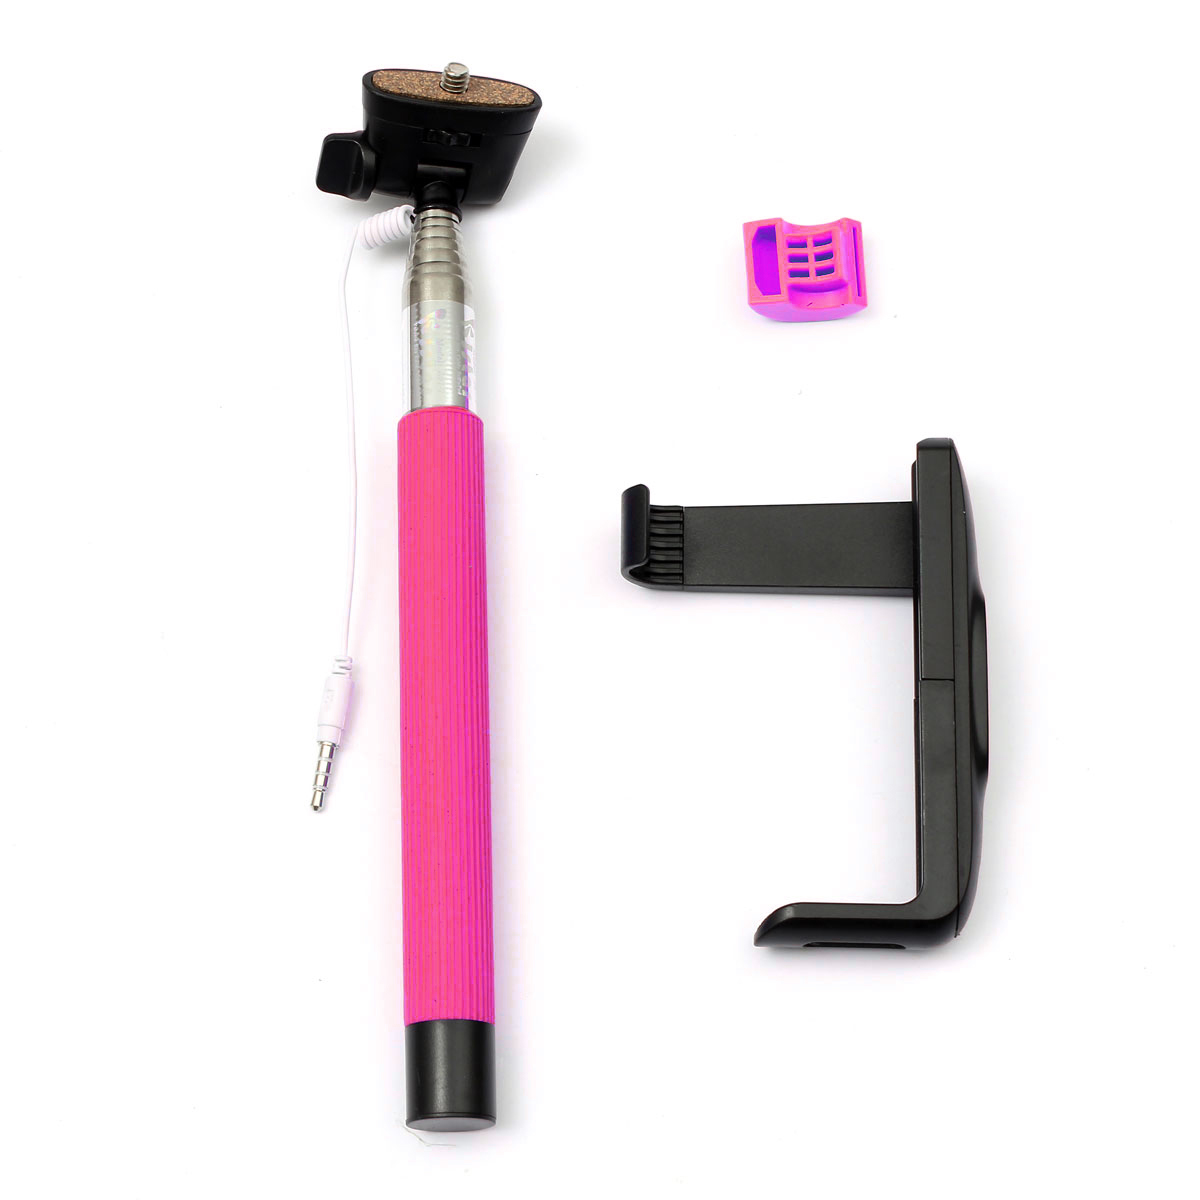 telescopic handheld monopod selfie stick for iphone 6 6 plus sony htc lg moto. Black Bedroom Furniture Sets. Home Design Ideas